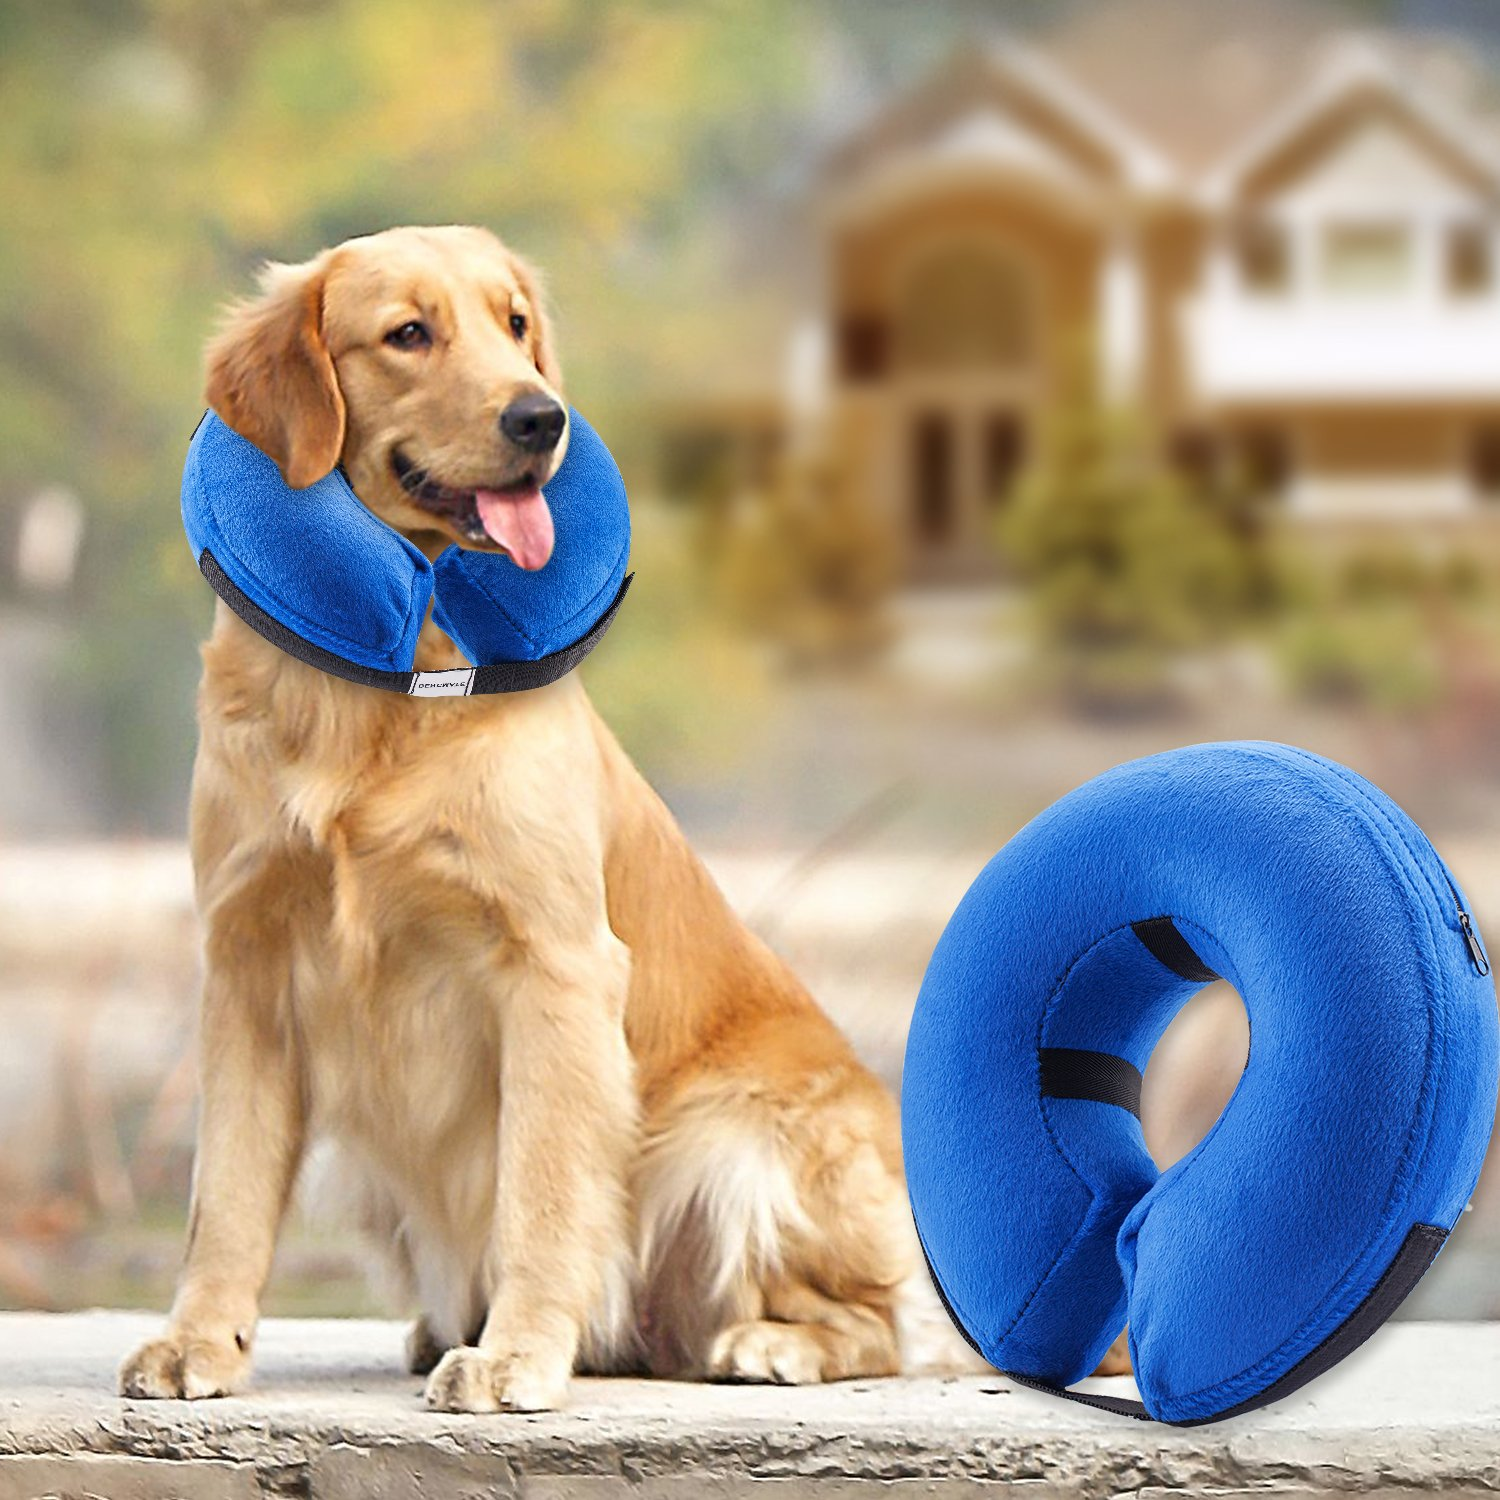 BENCMATE Protective Inflatable Collar for Dogs and Cats - Soft Pet Recovery Collar Does Not Block Vision E-Collar(Large) by BENCMATE